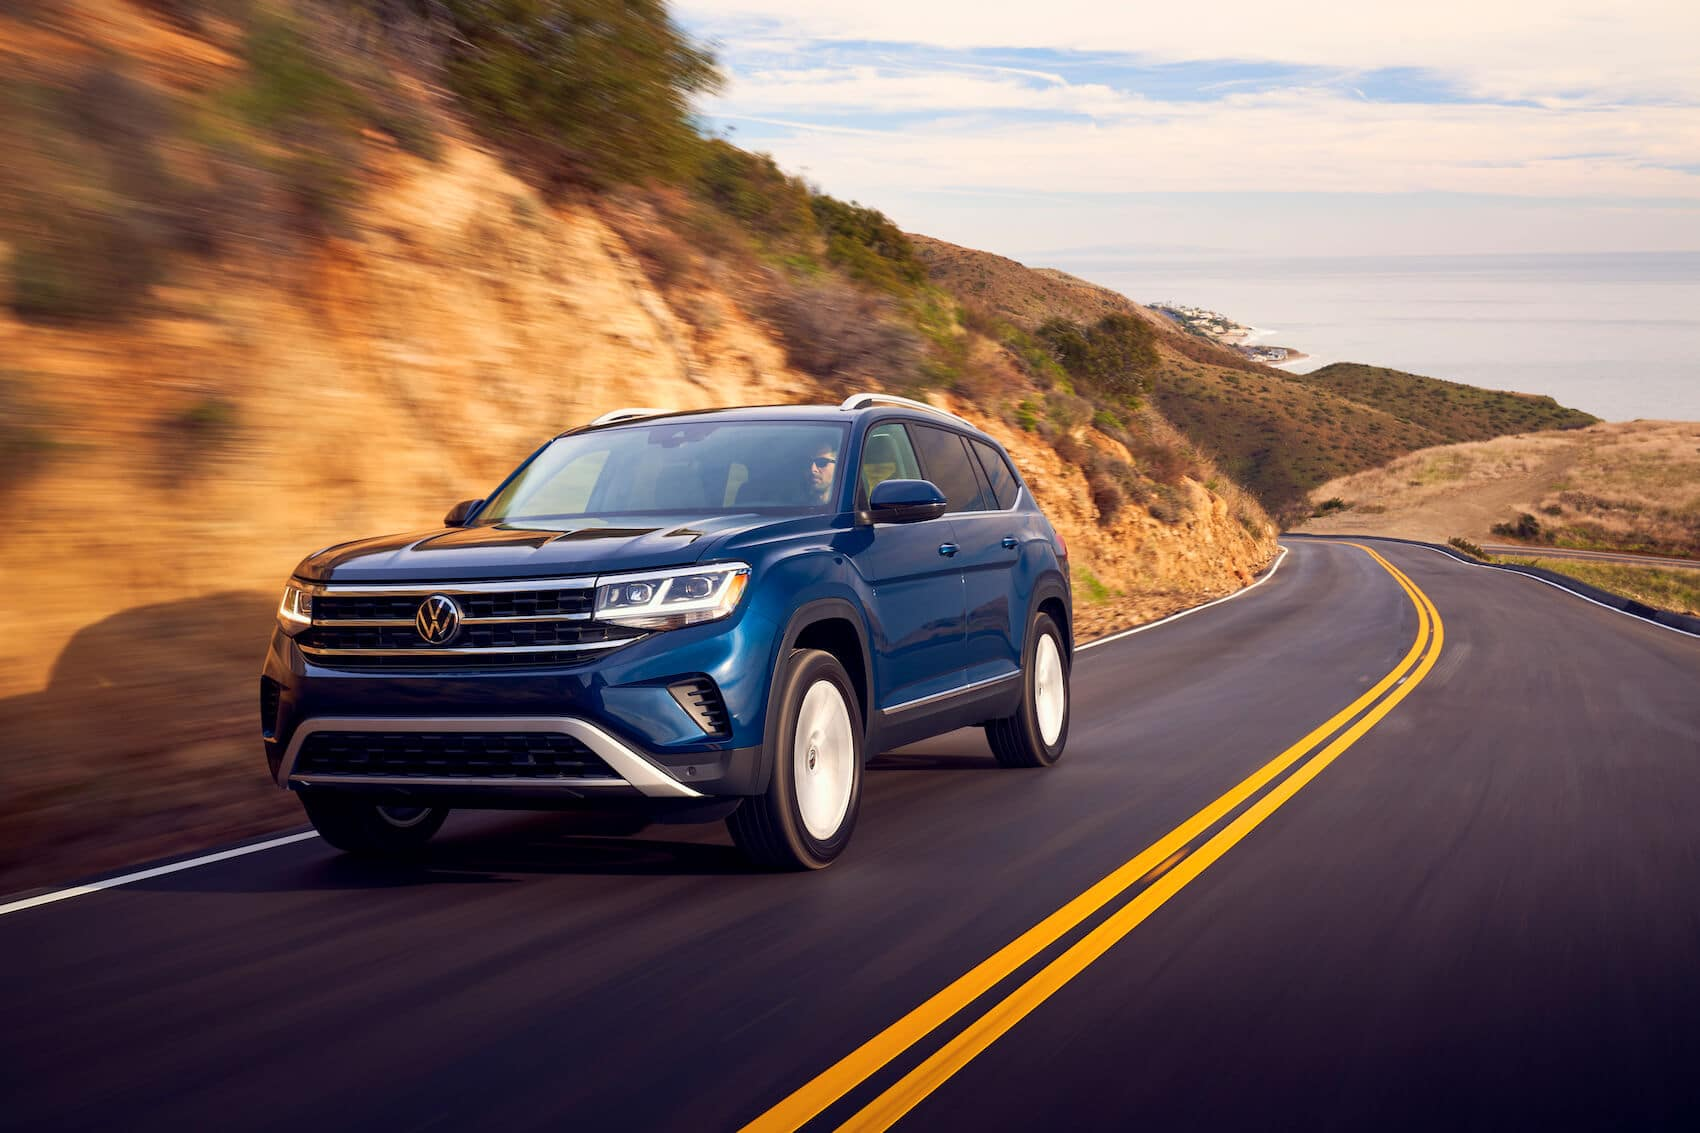 VW Atlas Highway Driving Safety